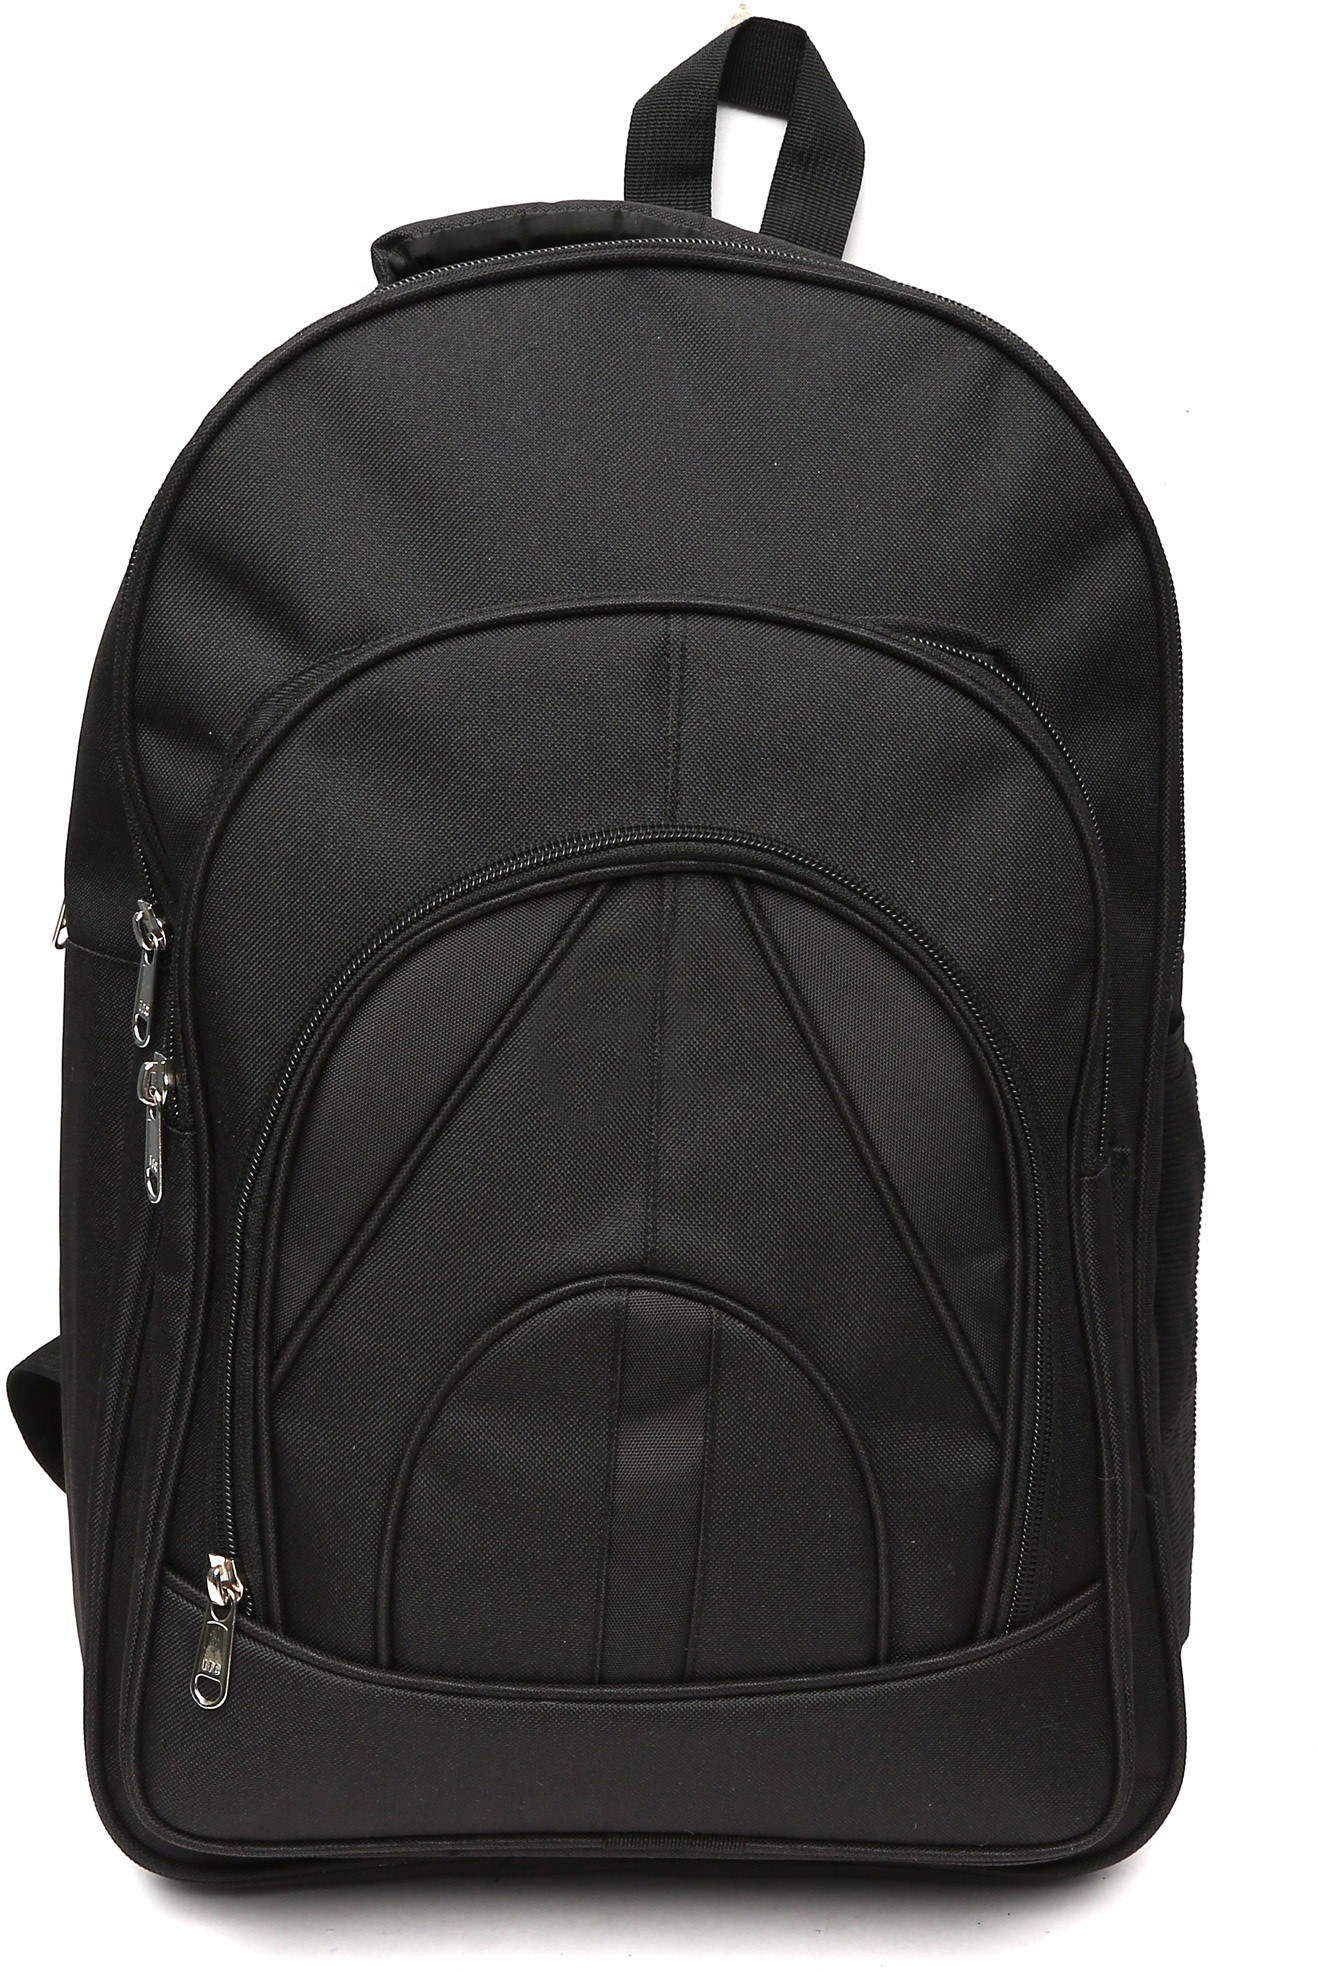 Vaishnovi 15.6 inch Laptop Backpack(Black)